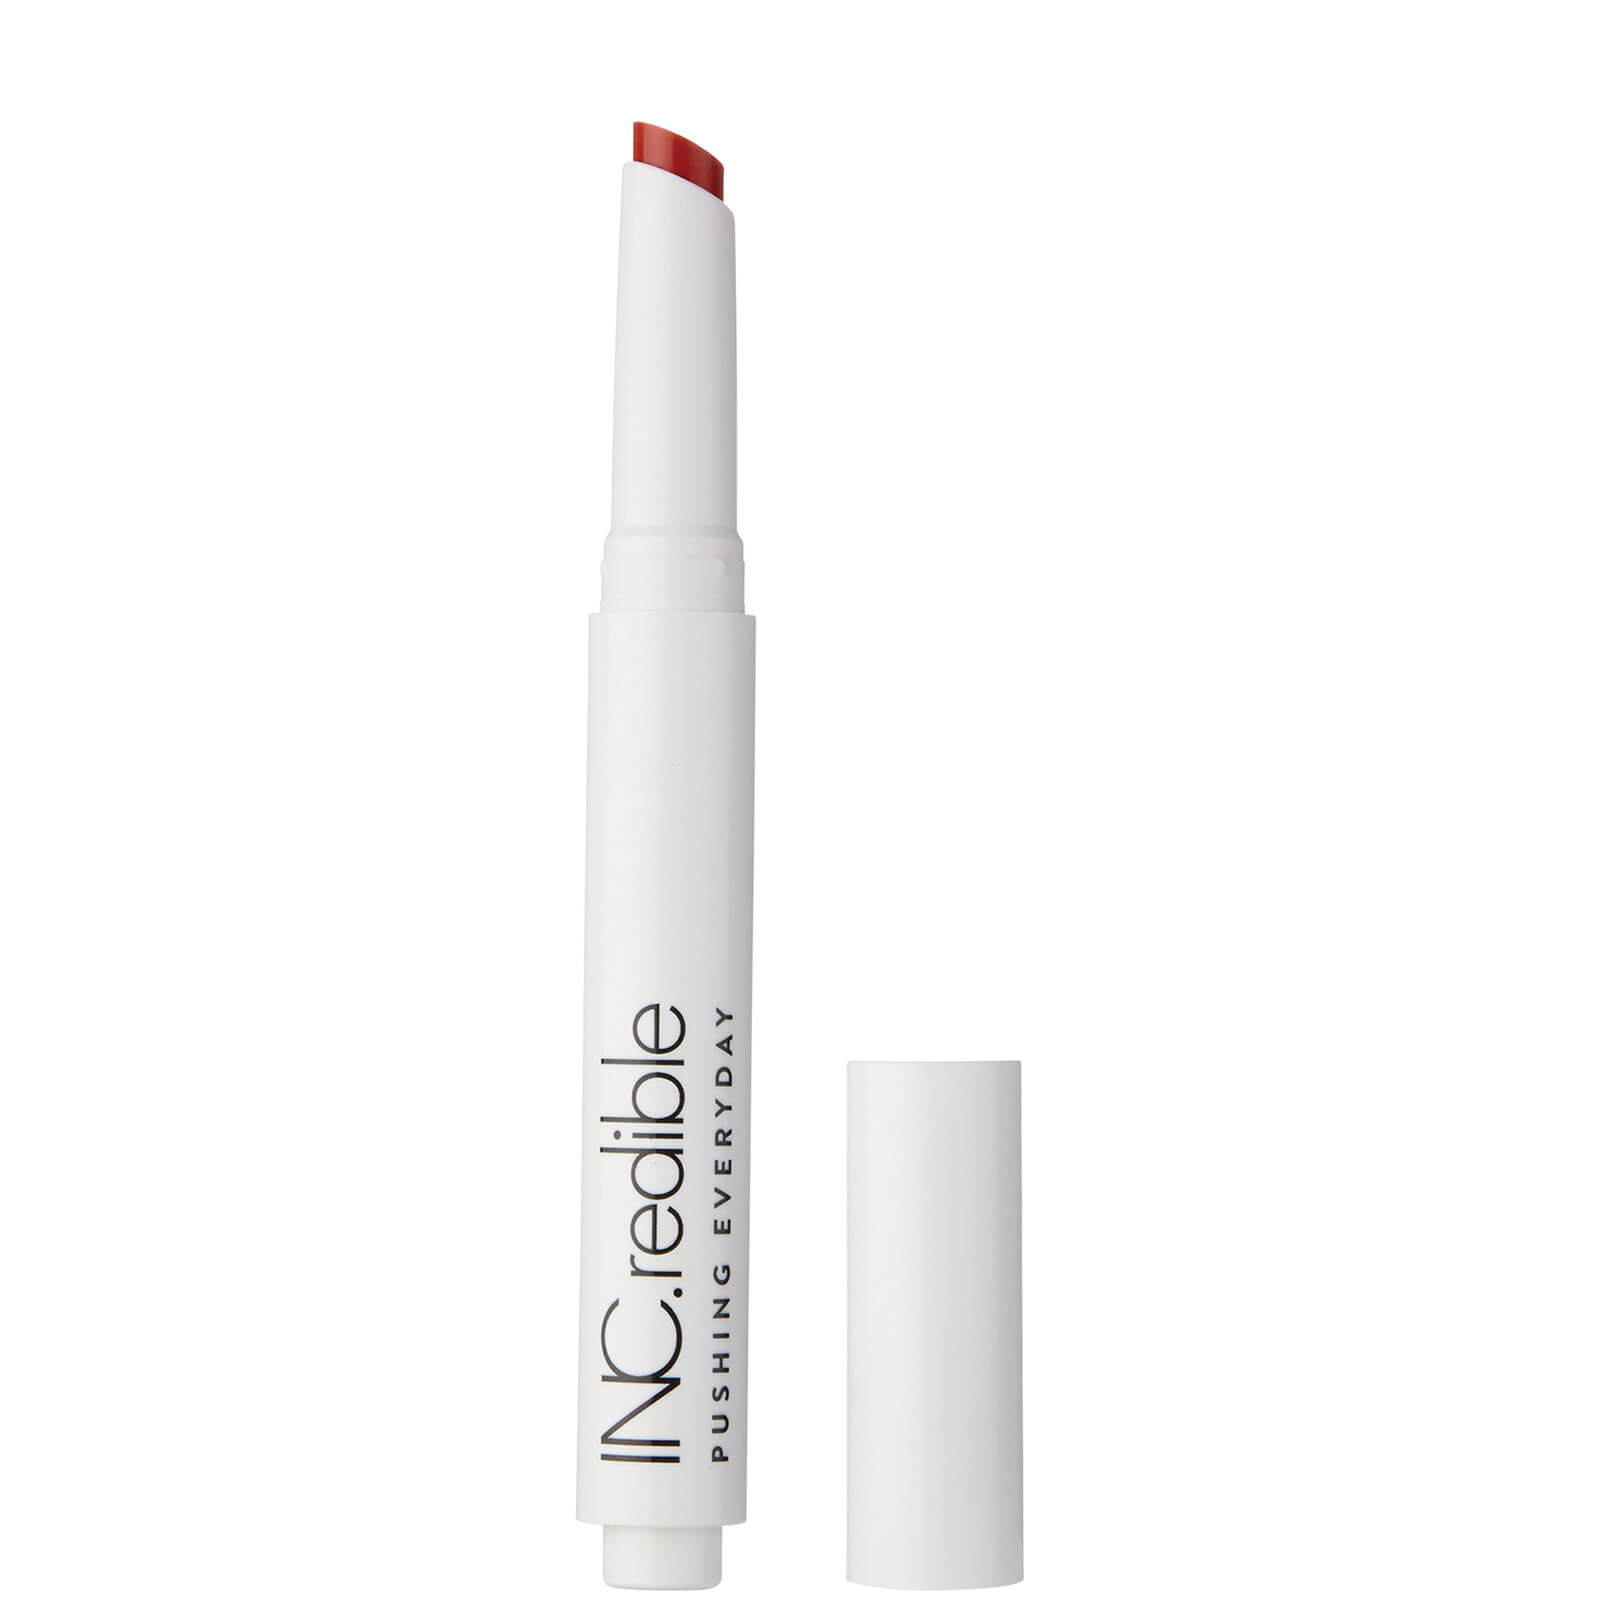 INC.redible Pushing Everyday rossetto semi-mat a pressione (varie tonalità) - Out of Office